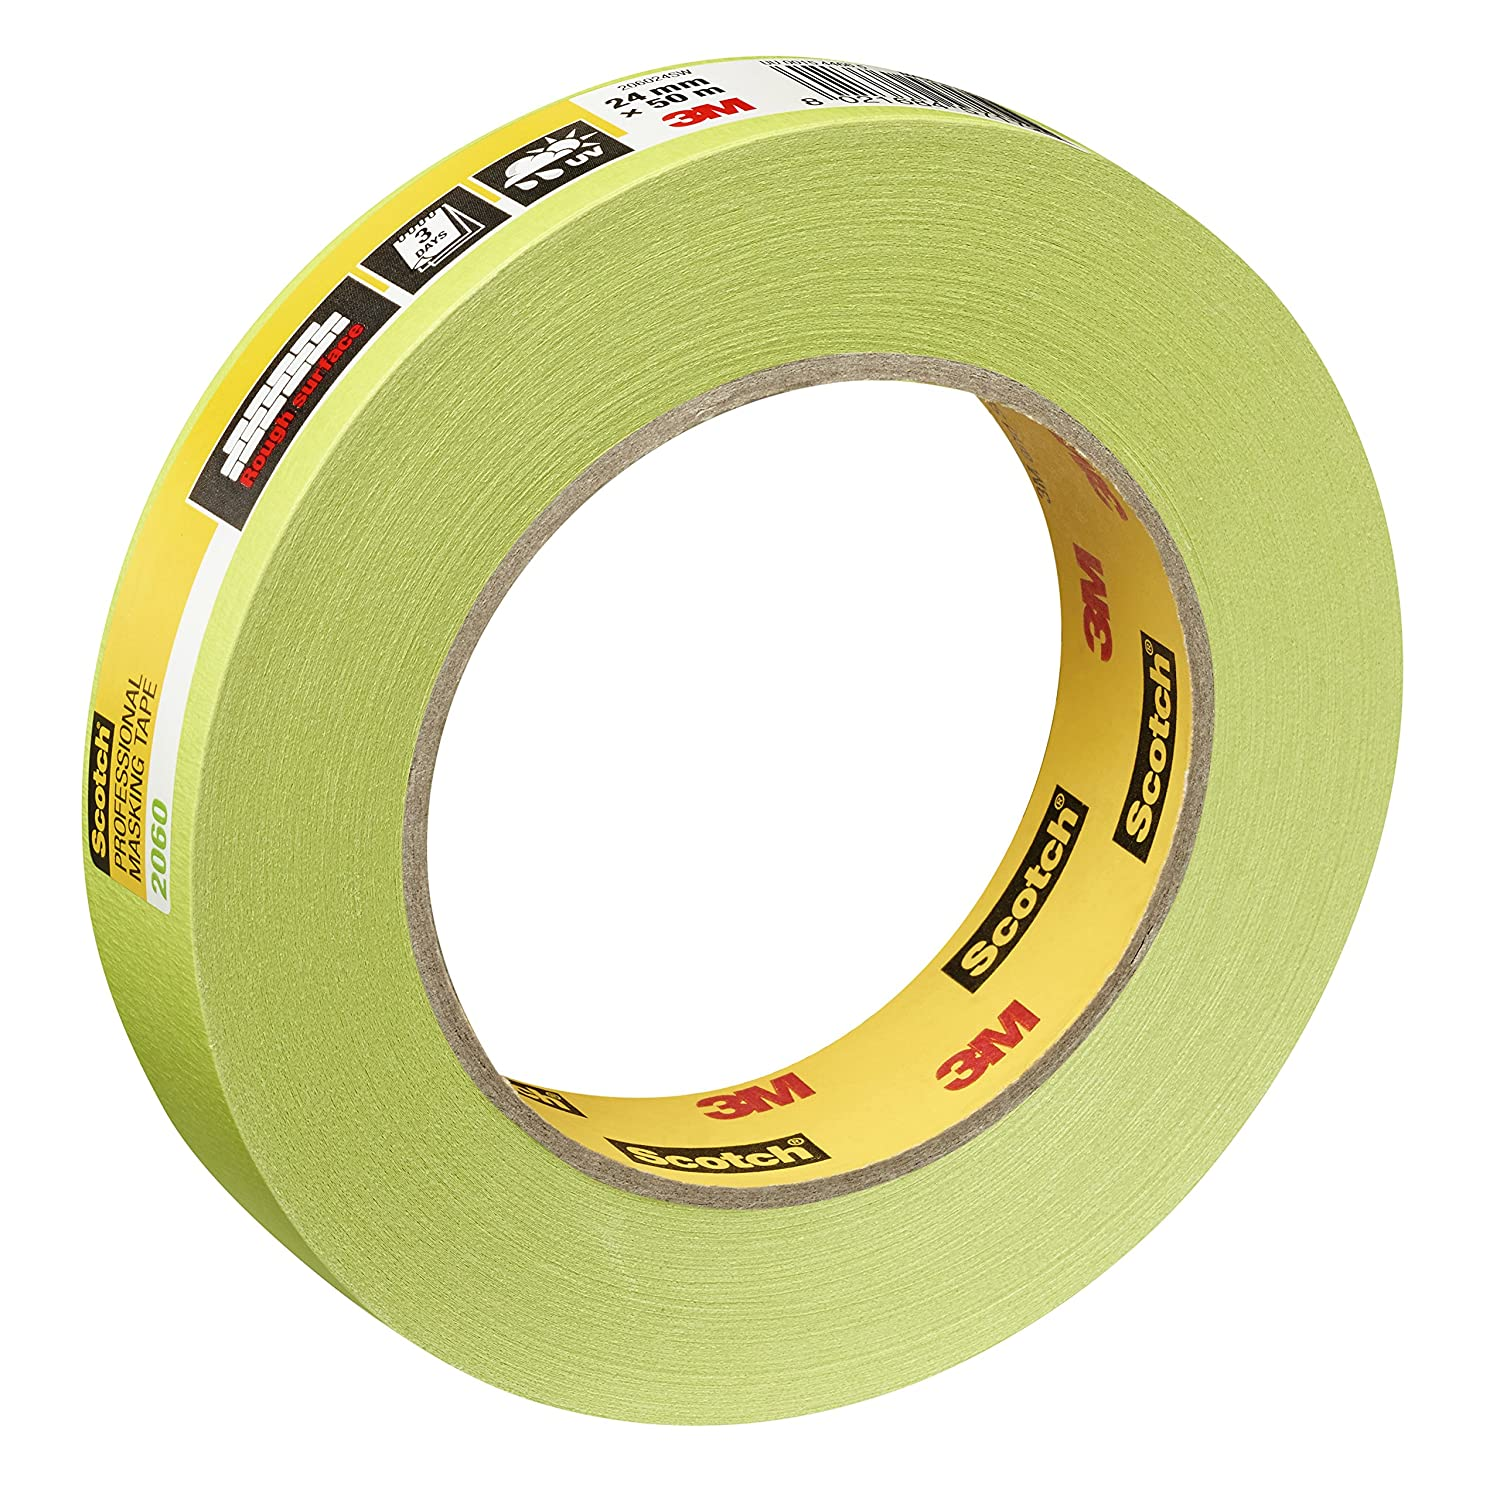 Scotch 70574 Nastri di Mascheratura per Superfici Ruvide, 36 mm x 50 m 3MITA PT206038